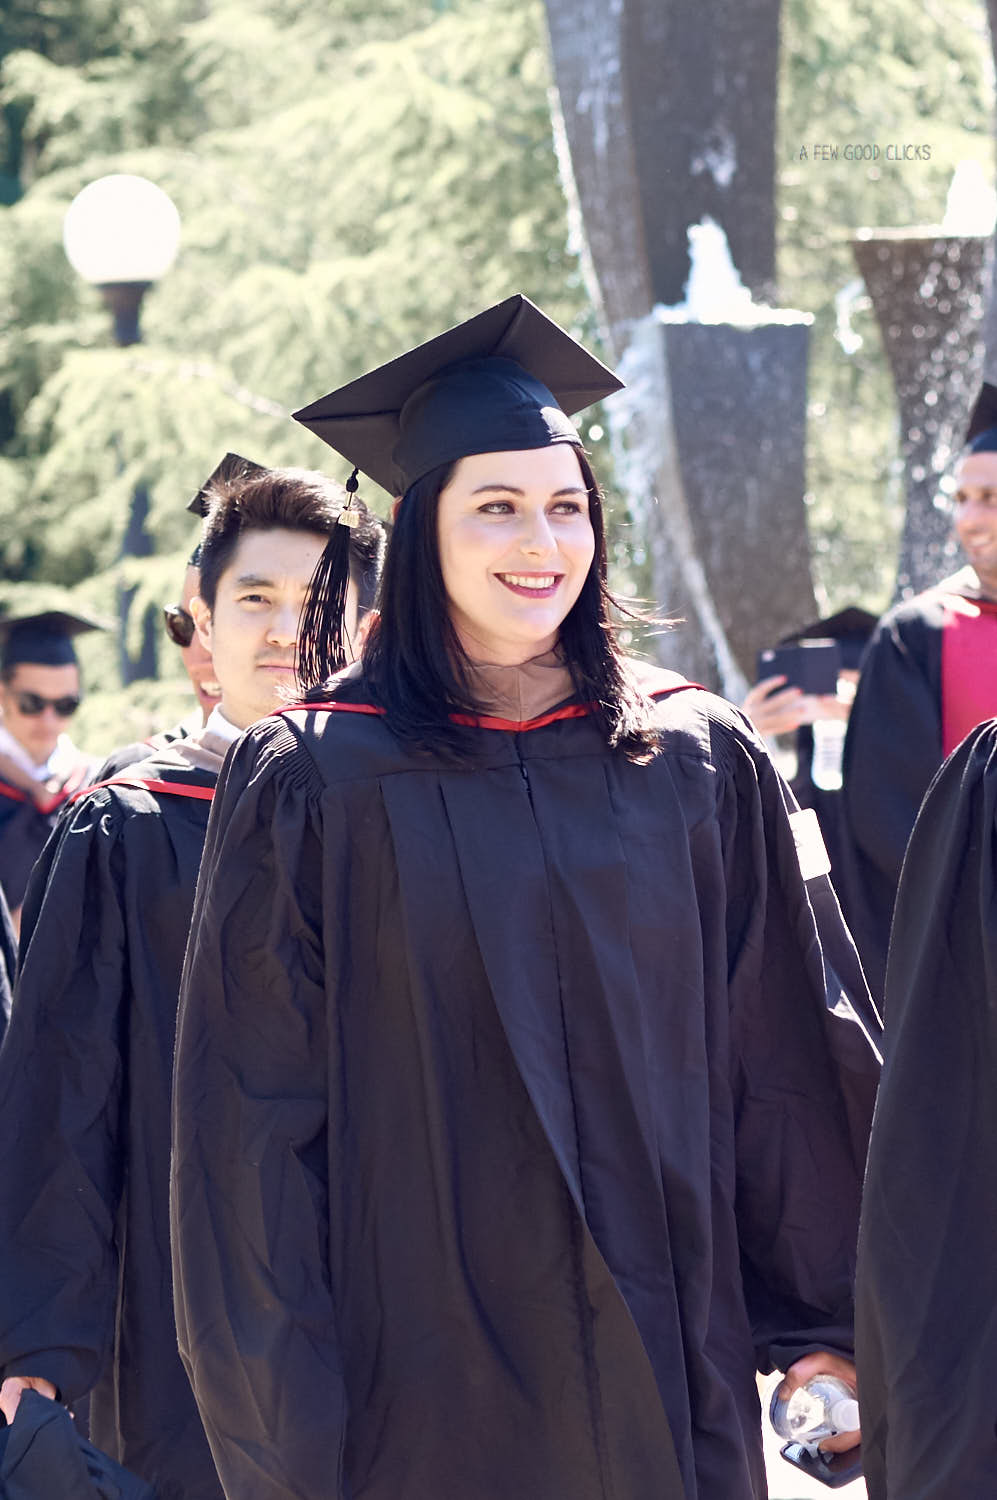 graduates-walking-for-the-completion-ceremony-photography-by-a-few-good-clicks 17.jpg